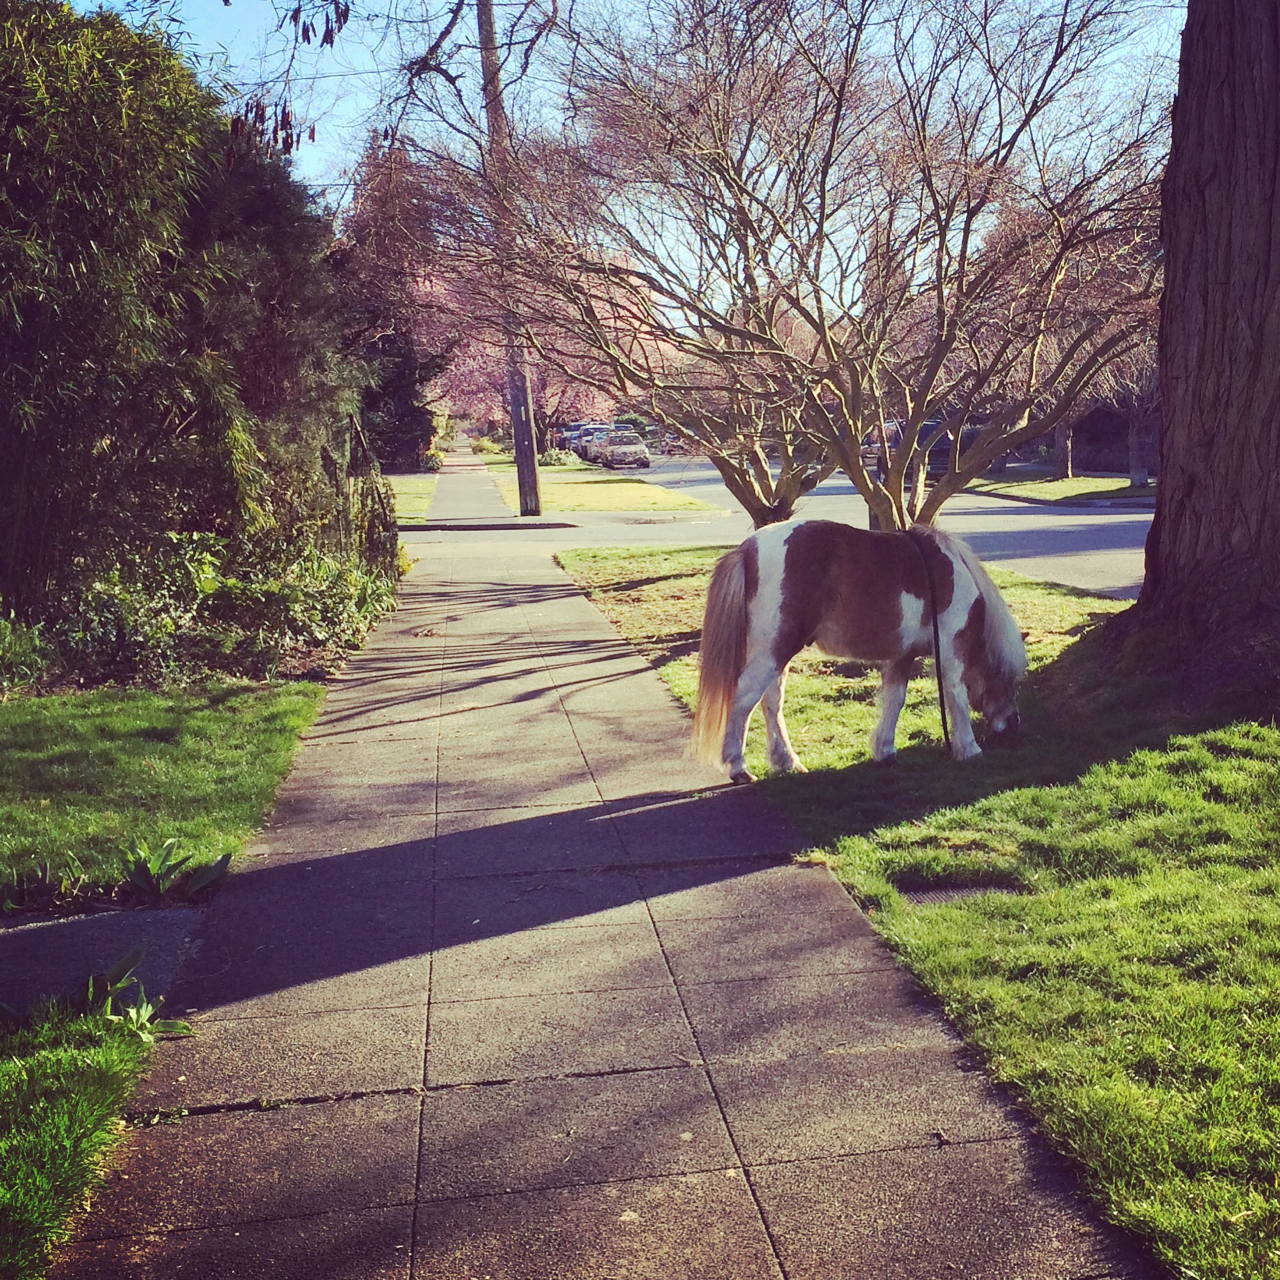 Jeb, the local horse (in miniature)